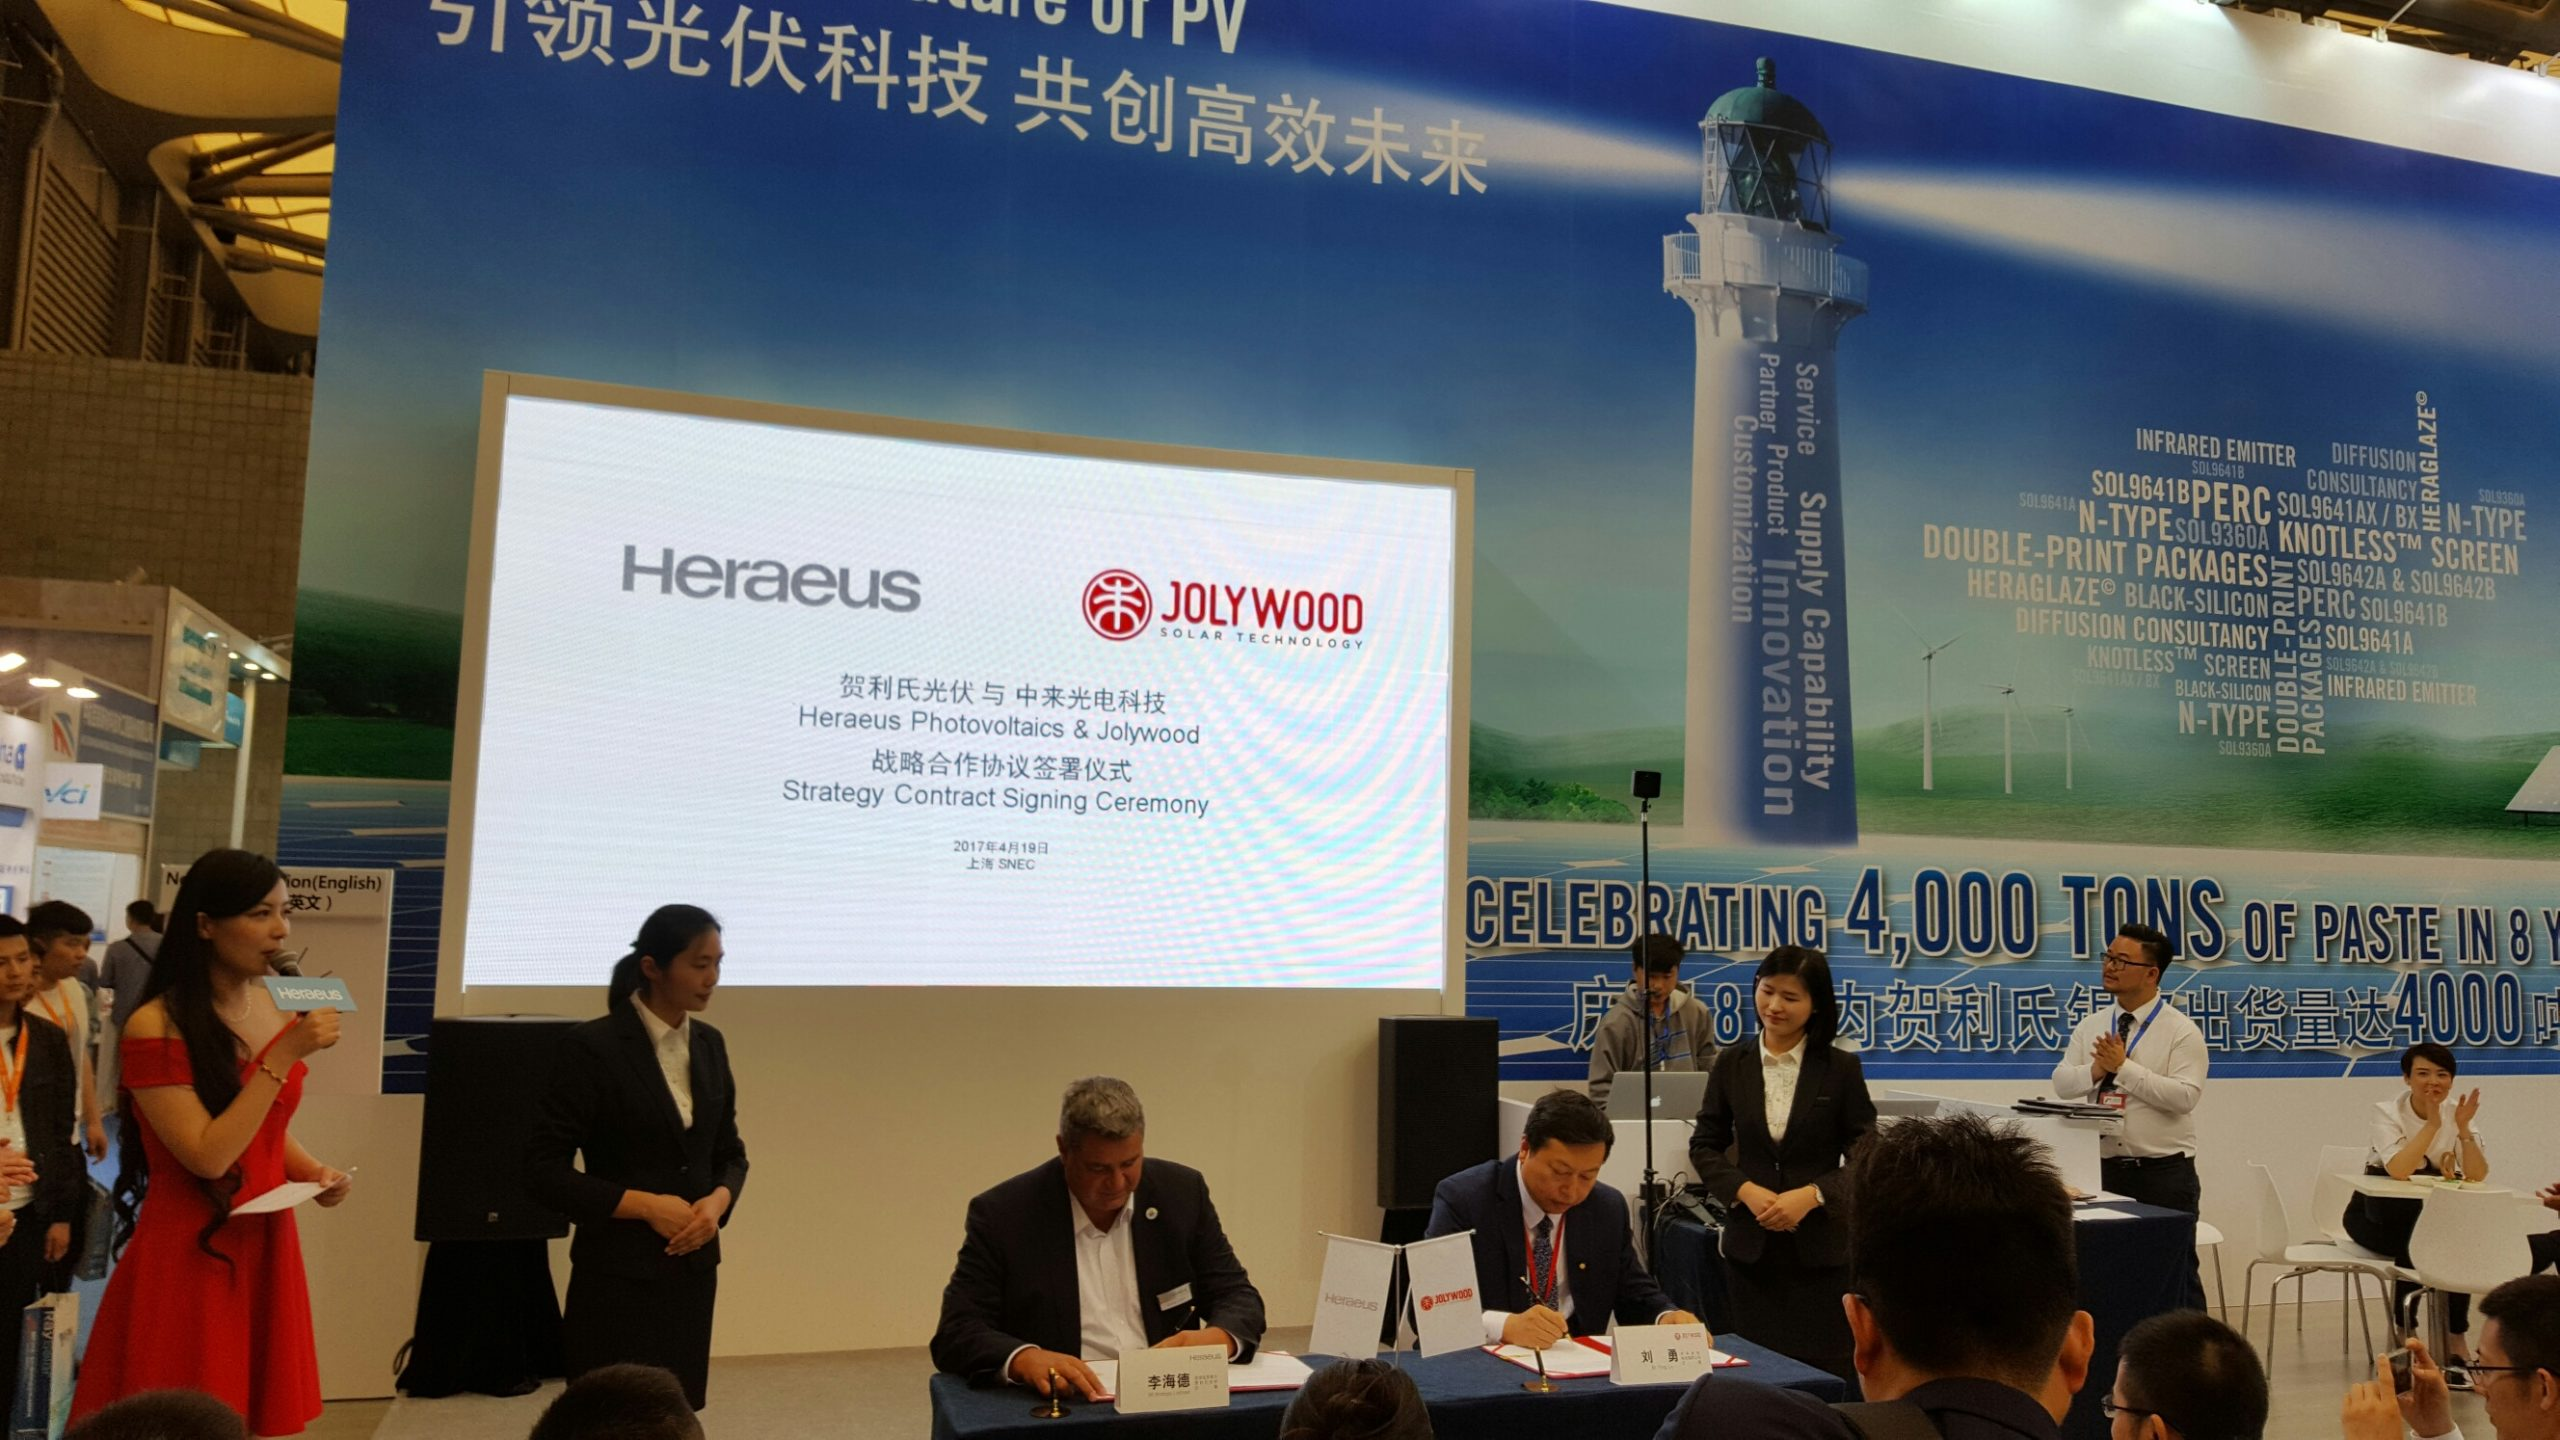 Jolywood, a leading manufacturer of advanced solar cell technologies, signed a strategic R&D cooperation agreement to develop next generation metallization solutions for n-type mono bifacial solar cells with Heraeus at SNEC 2017.